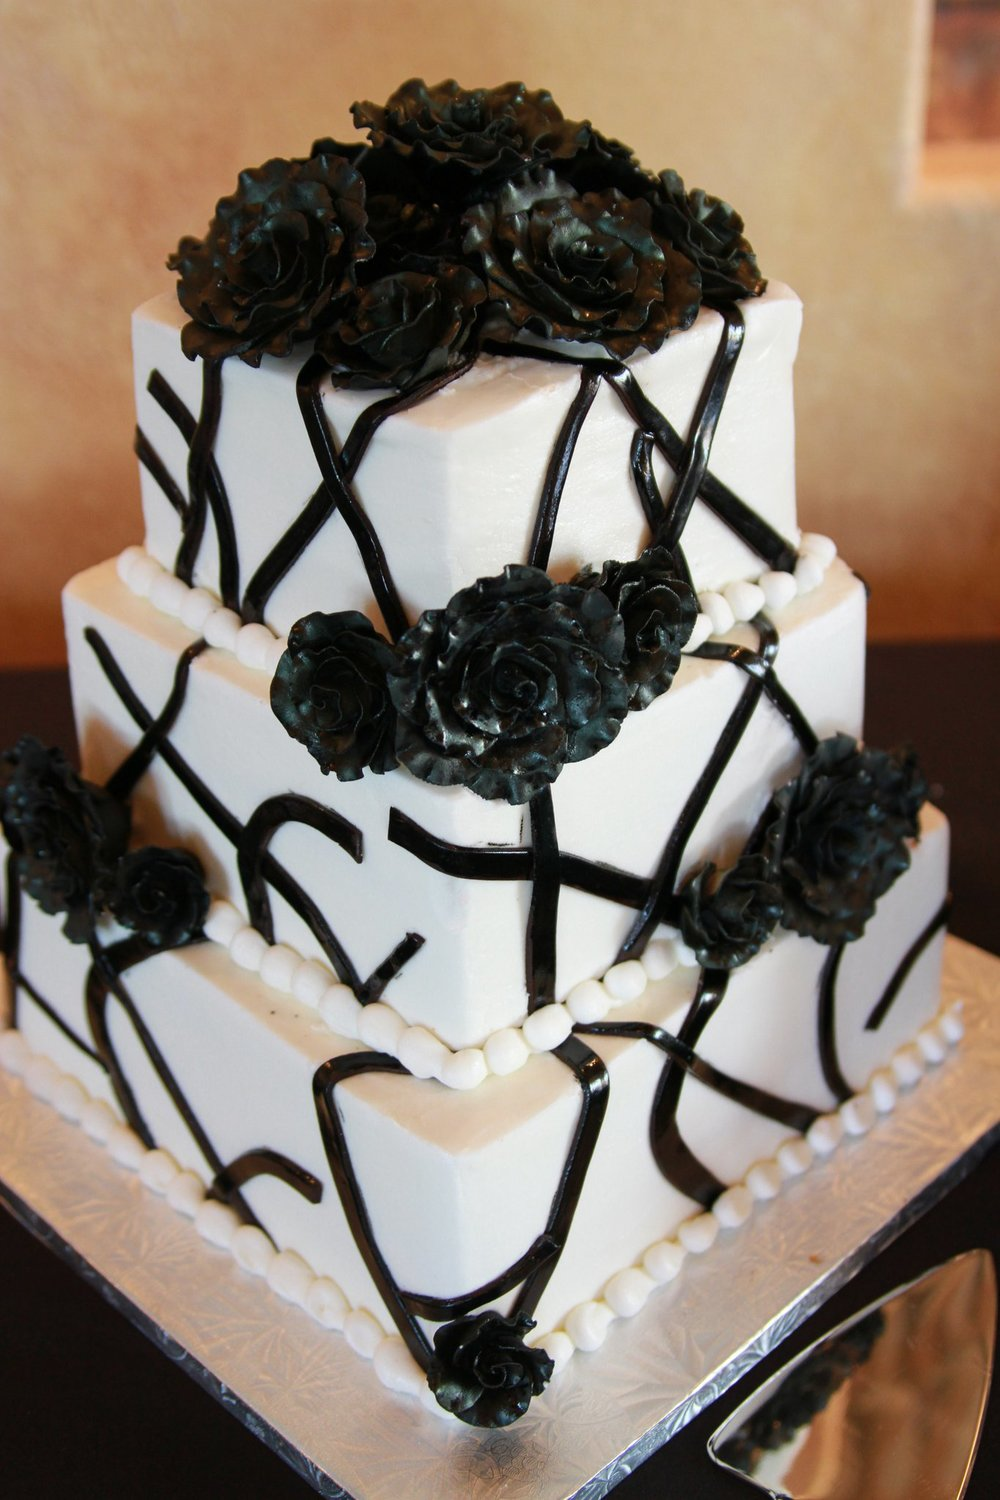 My black and white wedding cake (yes, those are black roses) :-)